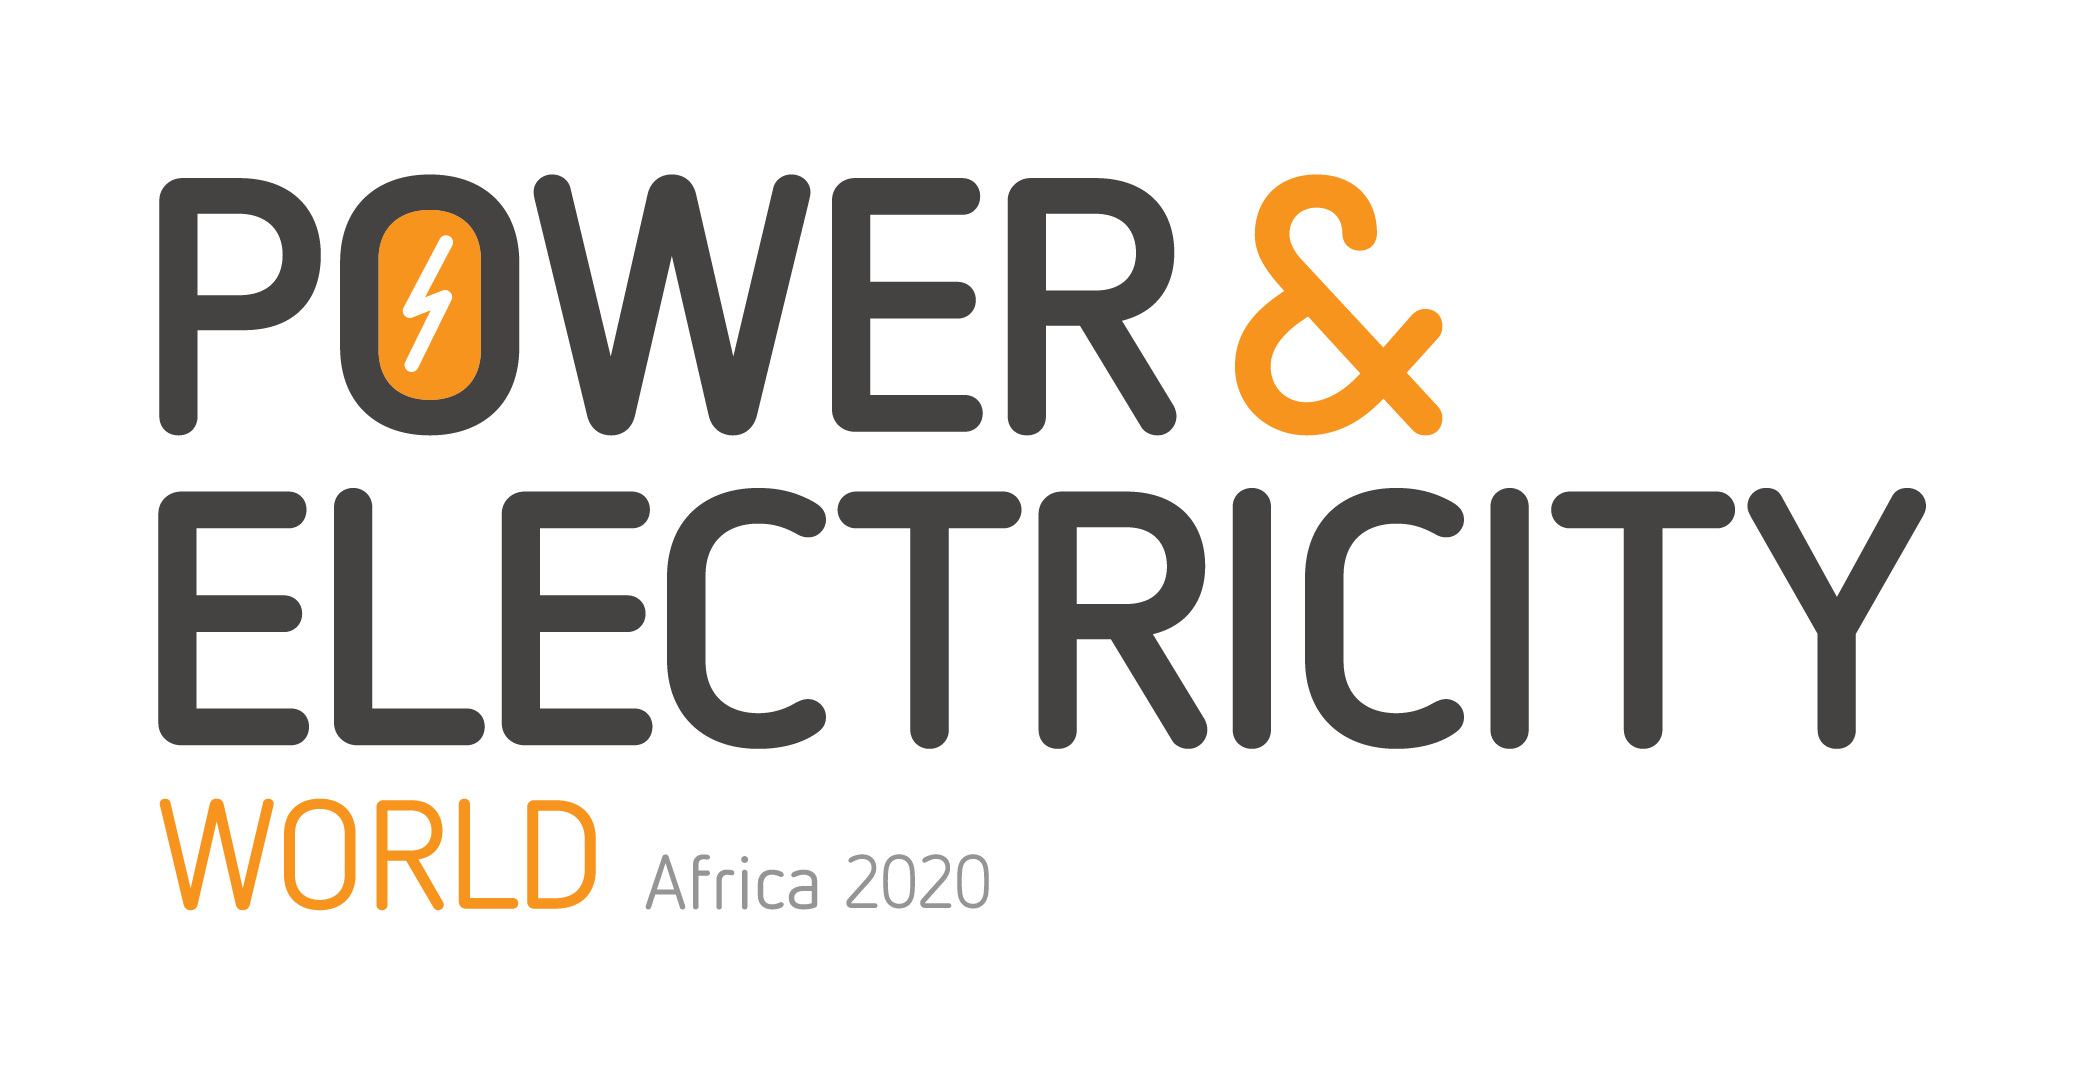 Power & Electricity World Africa 2020   31 March 2020 - 1 April 2020